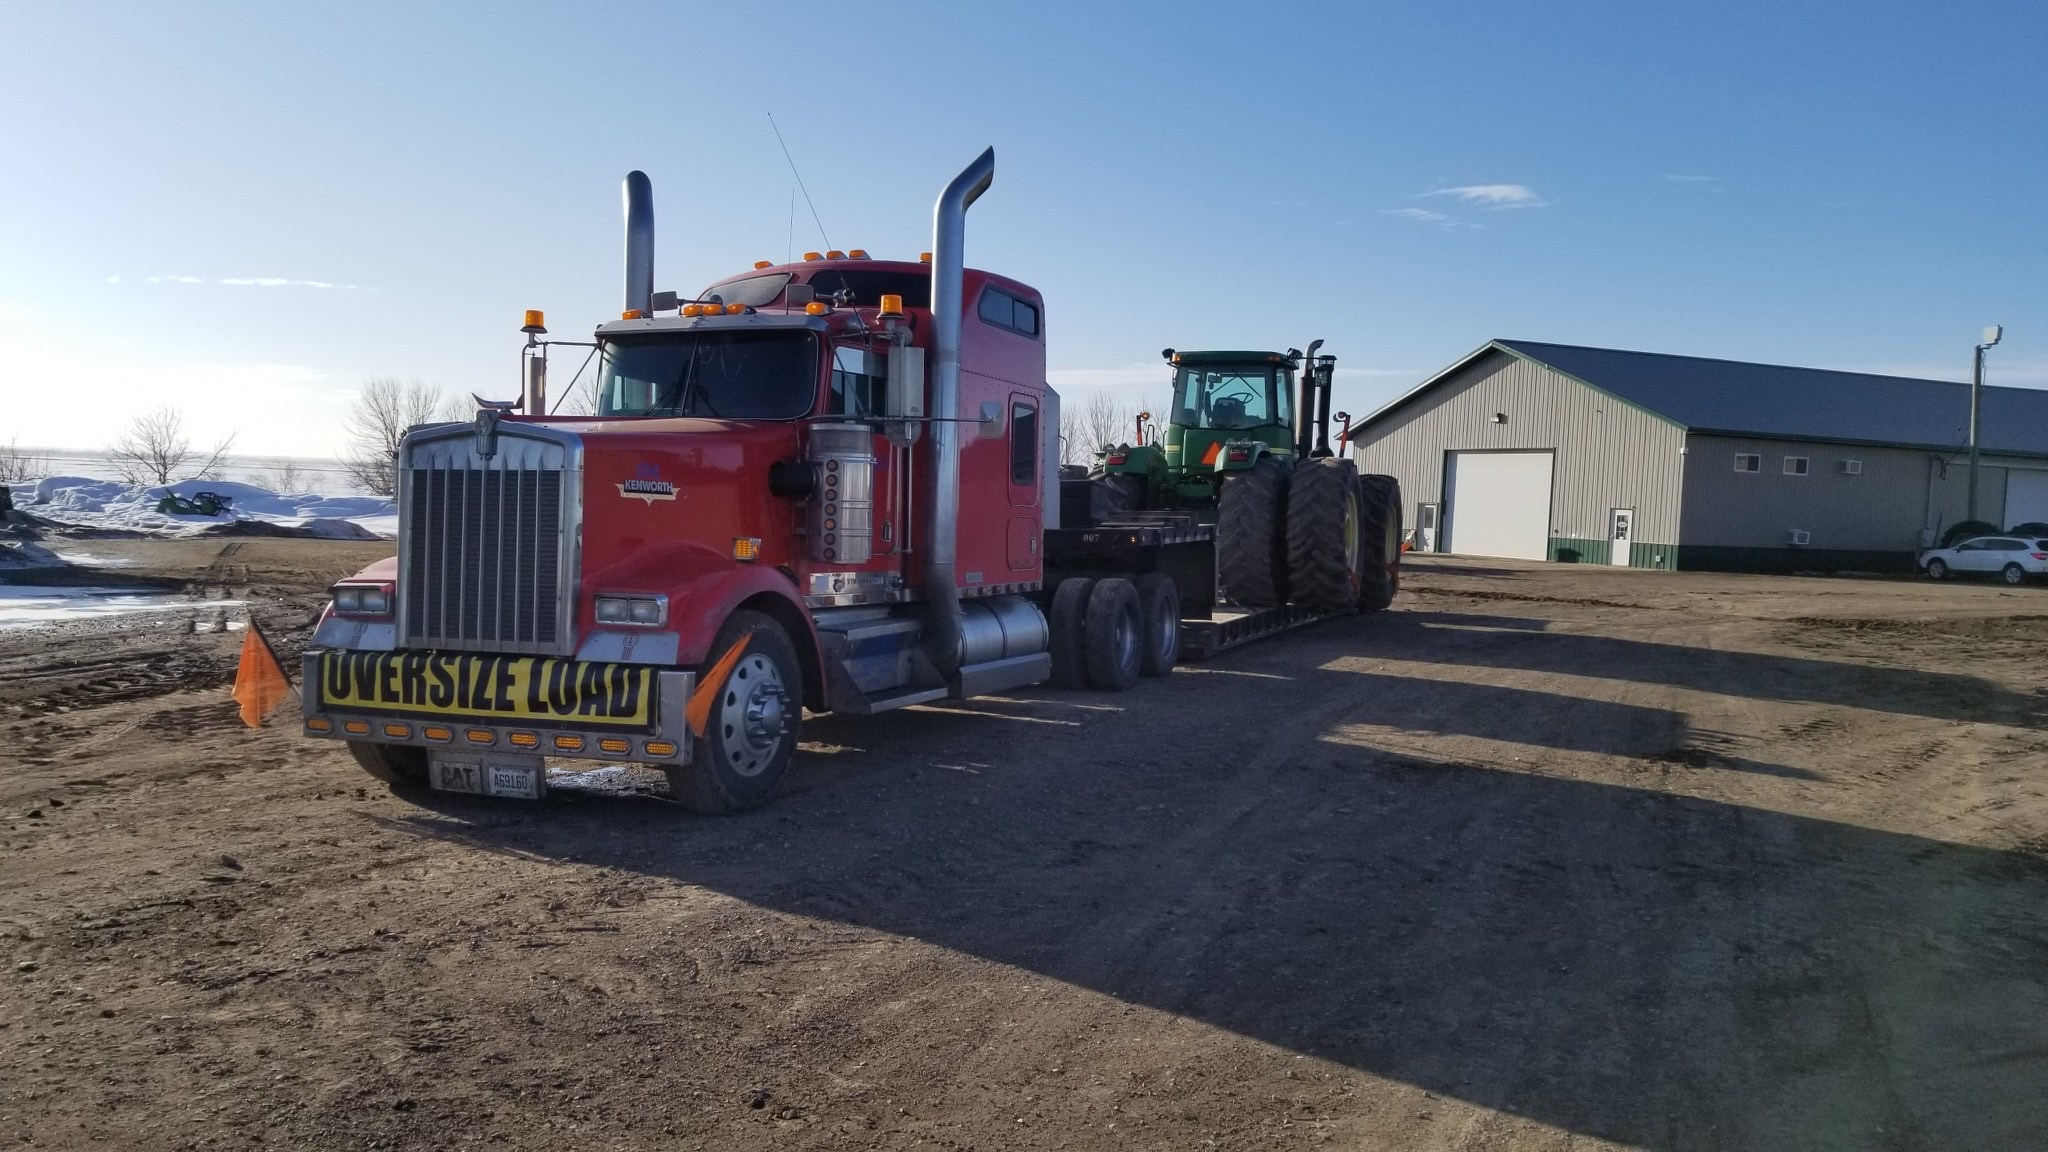 Tractor Hauling Oversize Load